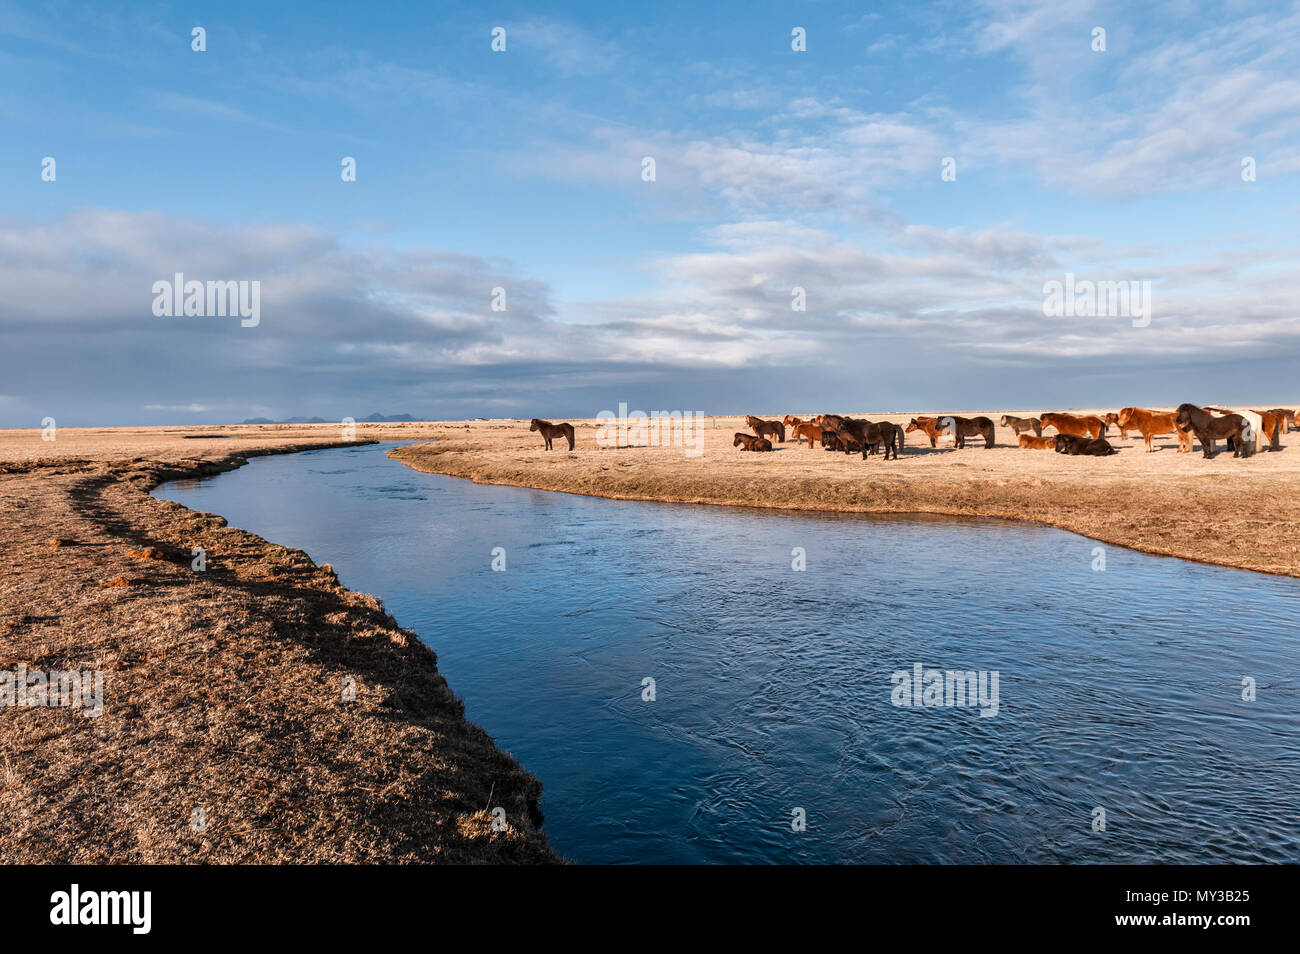 South Iceland. A herd of Icelandic horses by the Holtsá river, just south of  Eyjafjallajökull, seen in the early morning from the Ring Road - Stock Image